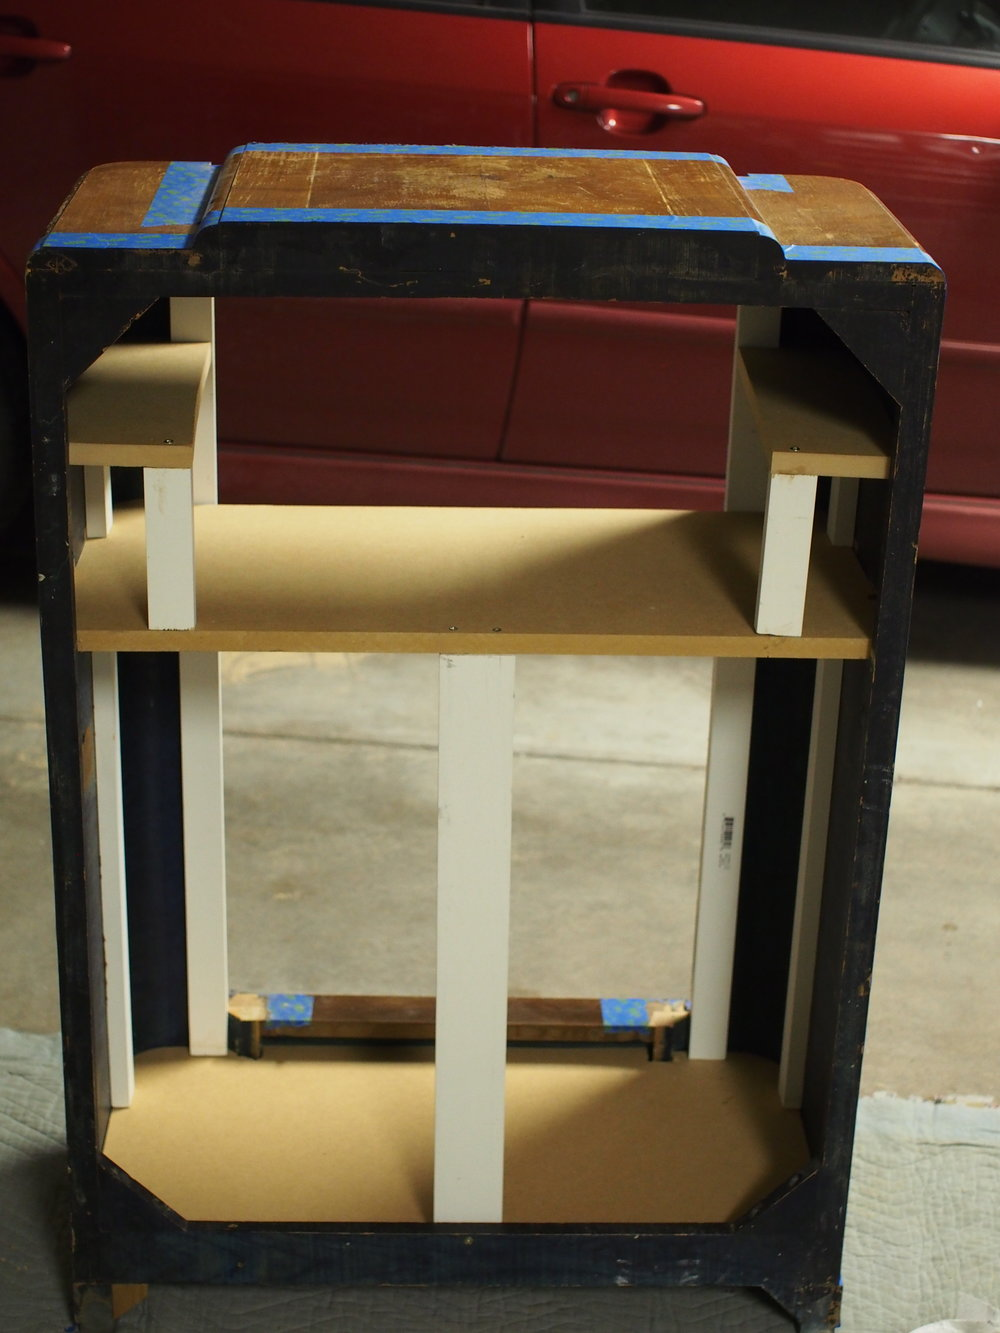 Little shelves, and a center support to prevent sagging